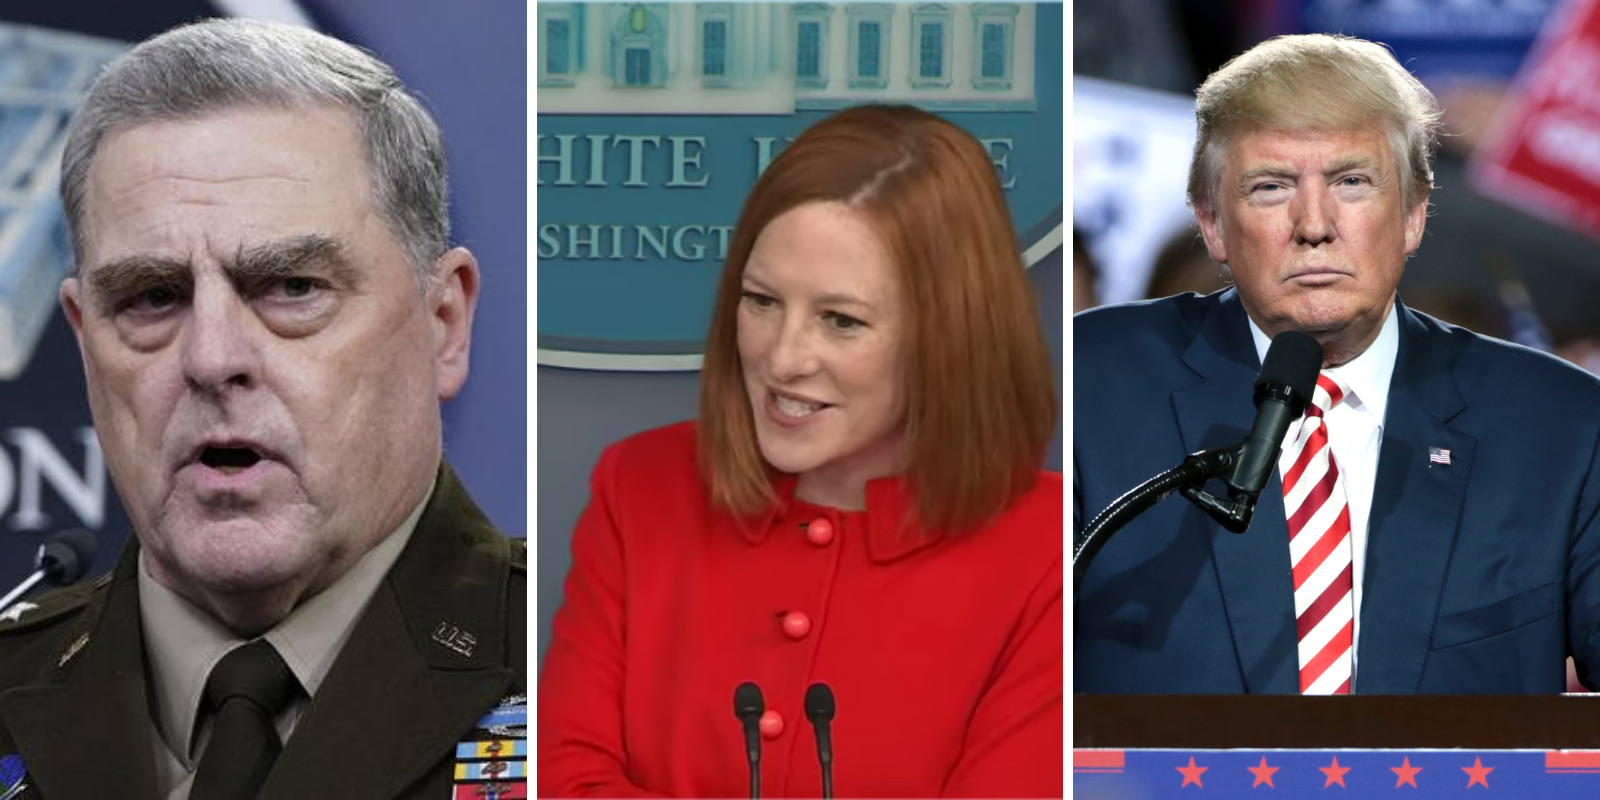 BREAKING: White House defends General Milley after revelations he undermined Trump by speaking to Chinese counterpart